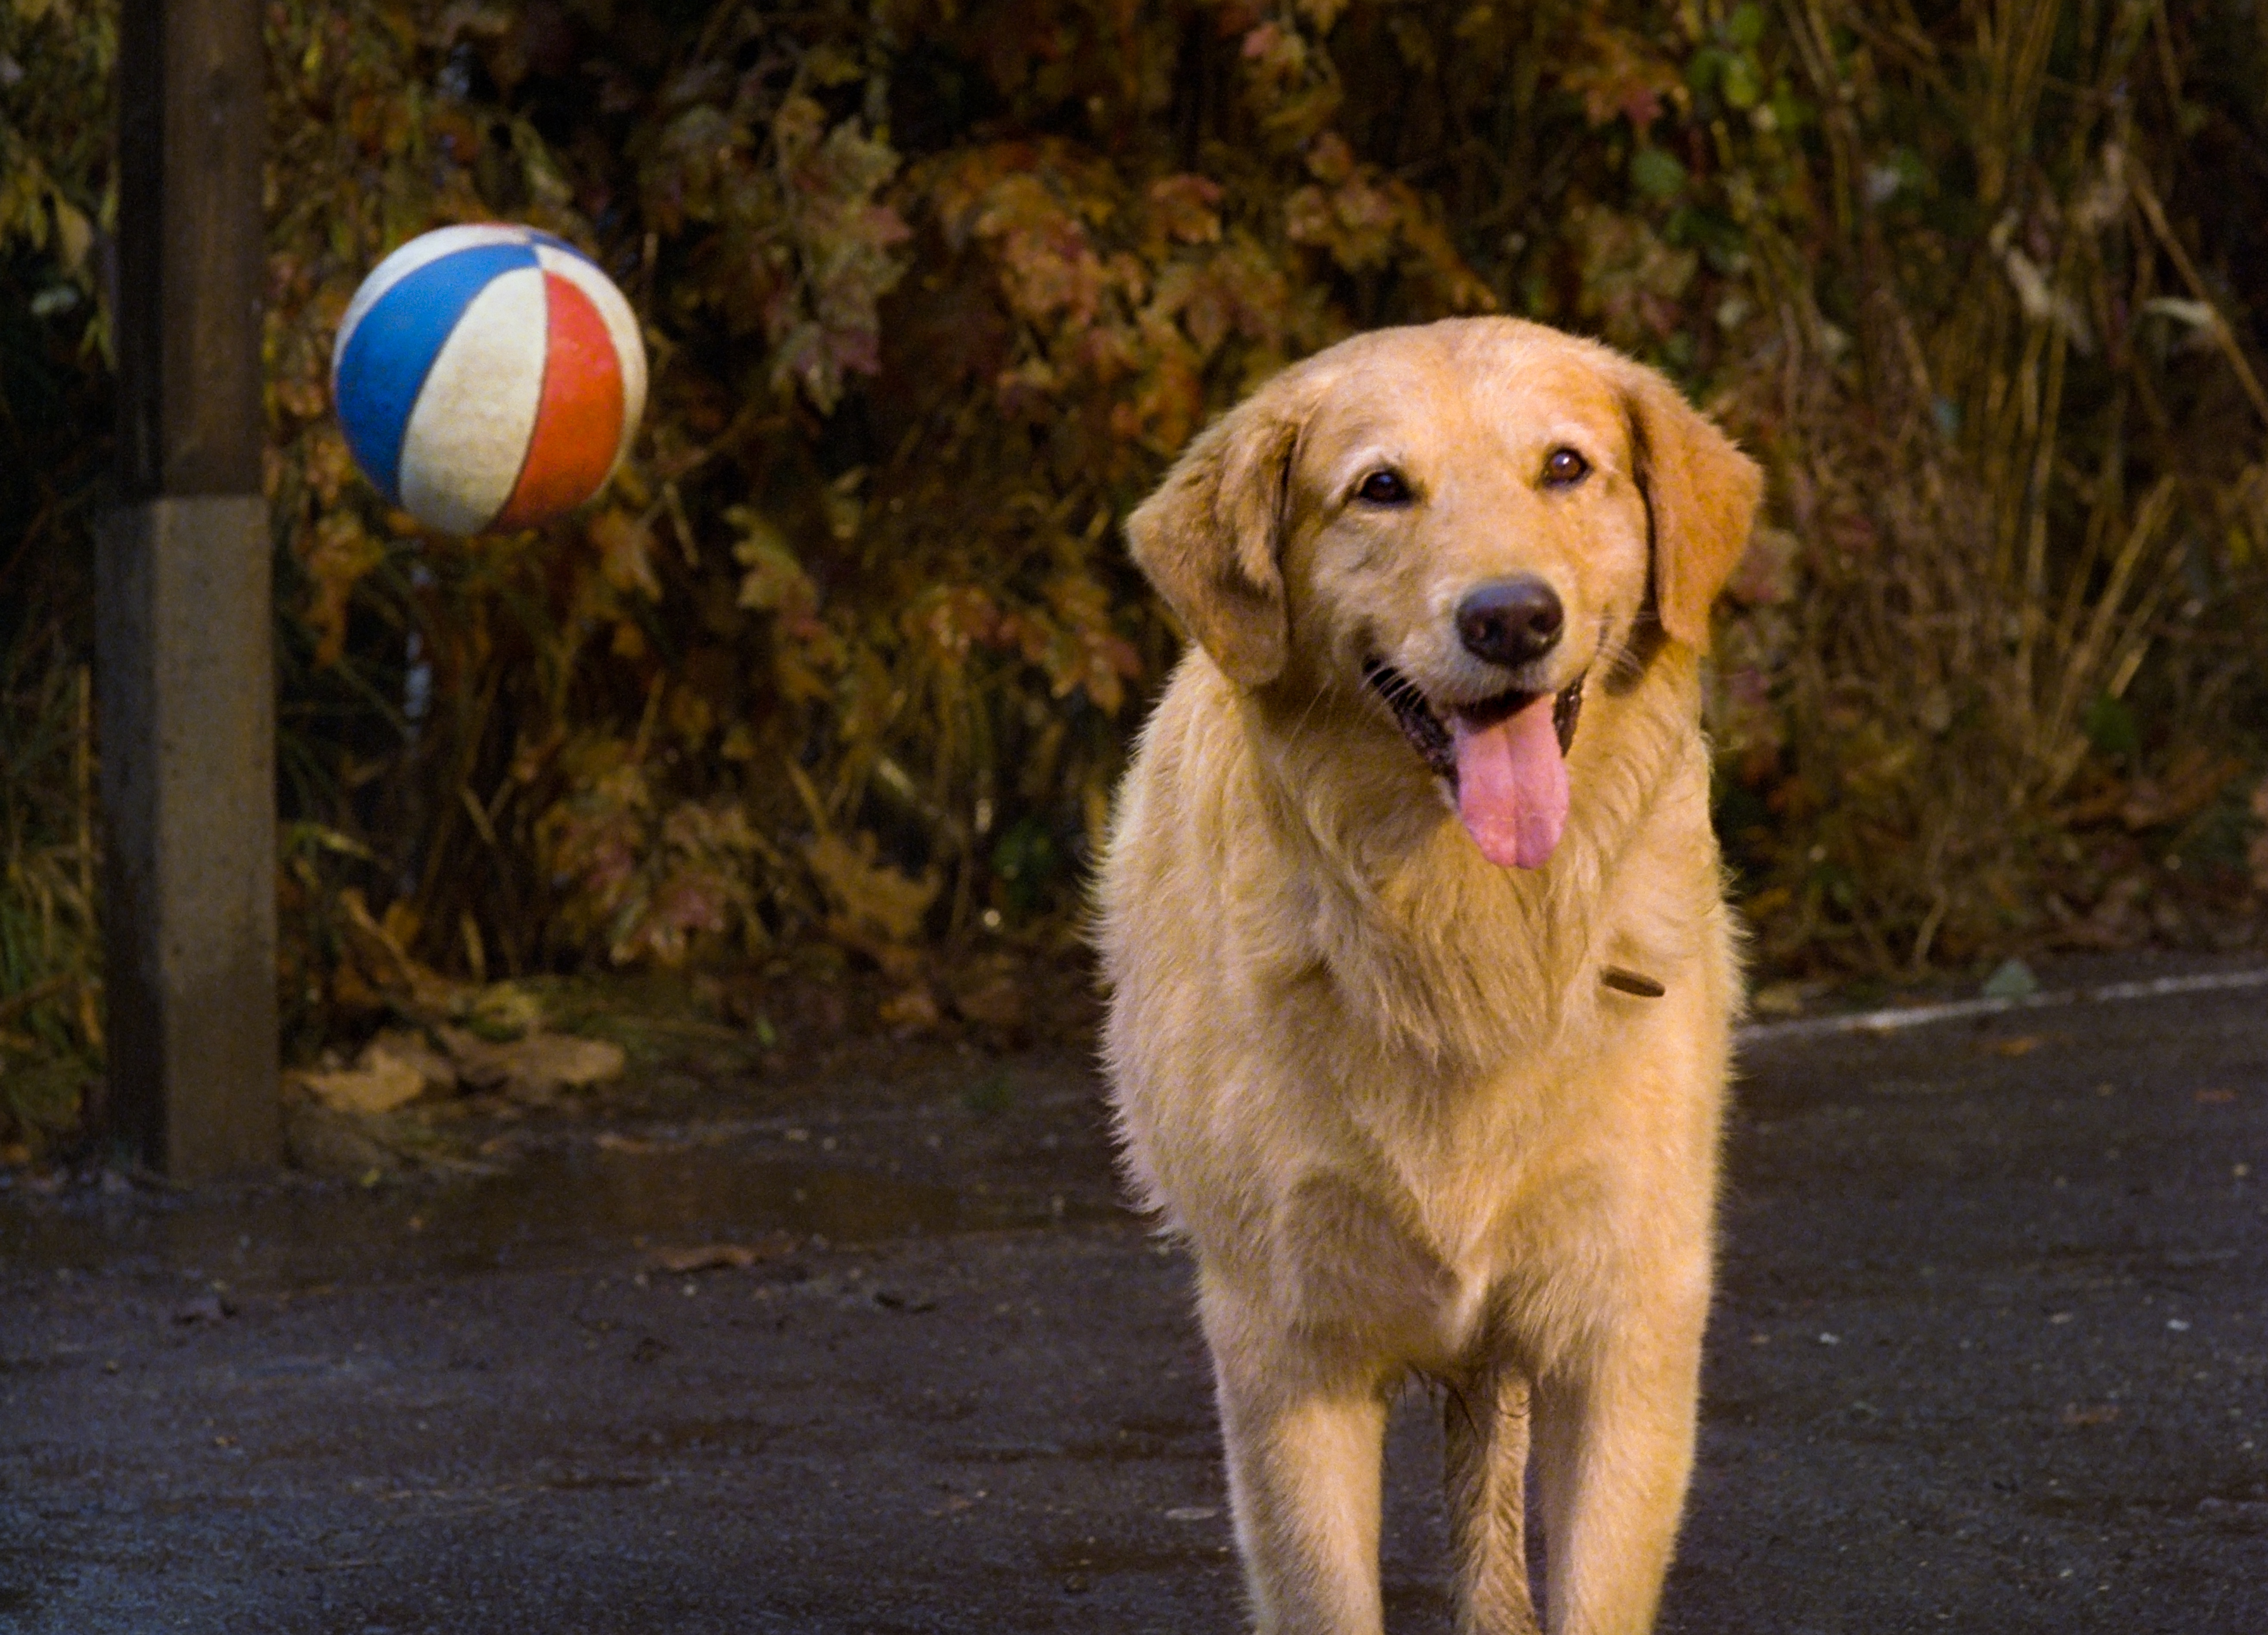 Brendan Fletcher and Kevin Zegers in Air Bud (1997)